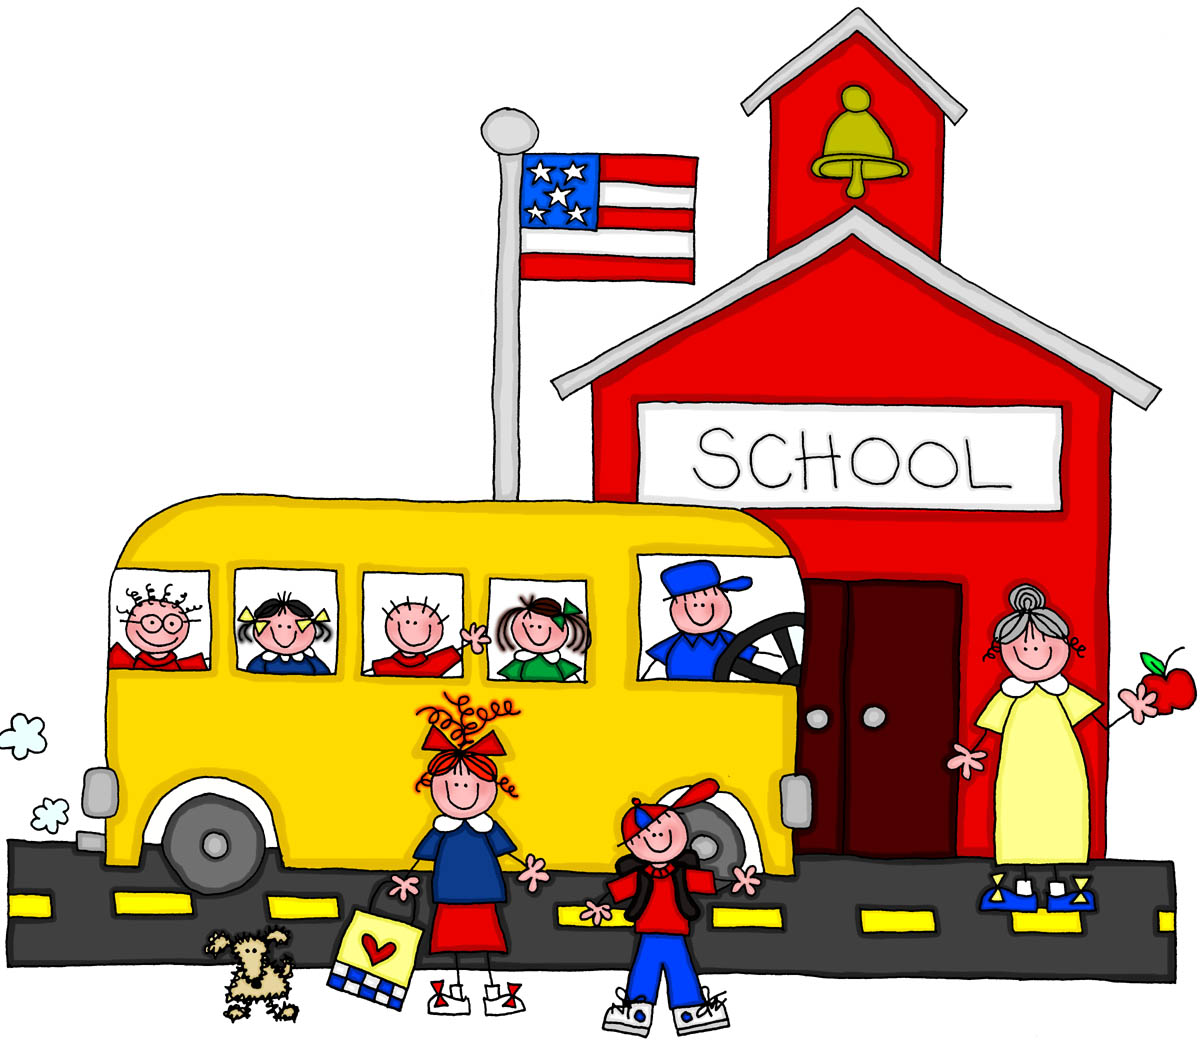 Cartoon physical therapy - Schoolhouse